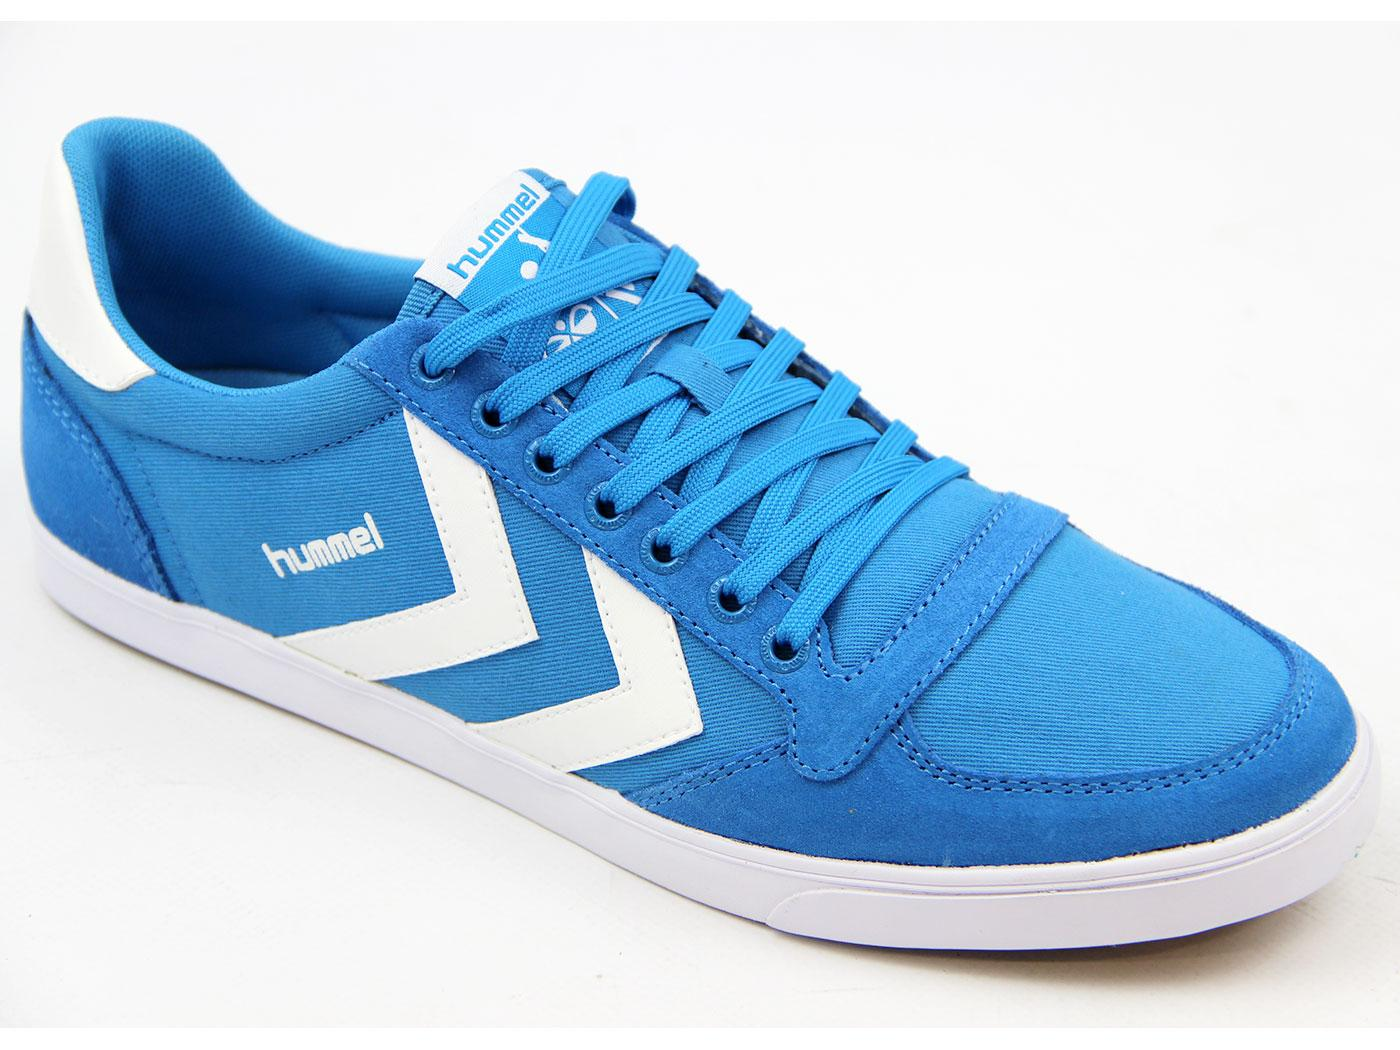 HUMMEL Slimmer Stadil Low Canvas Retro Trainers SB